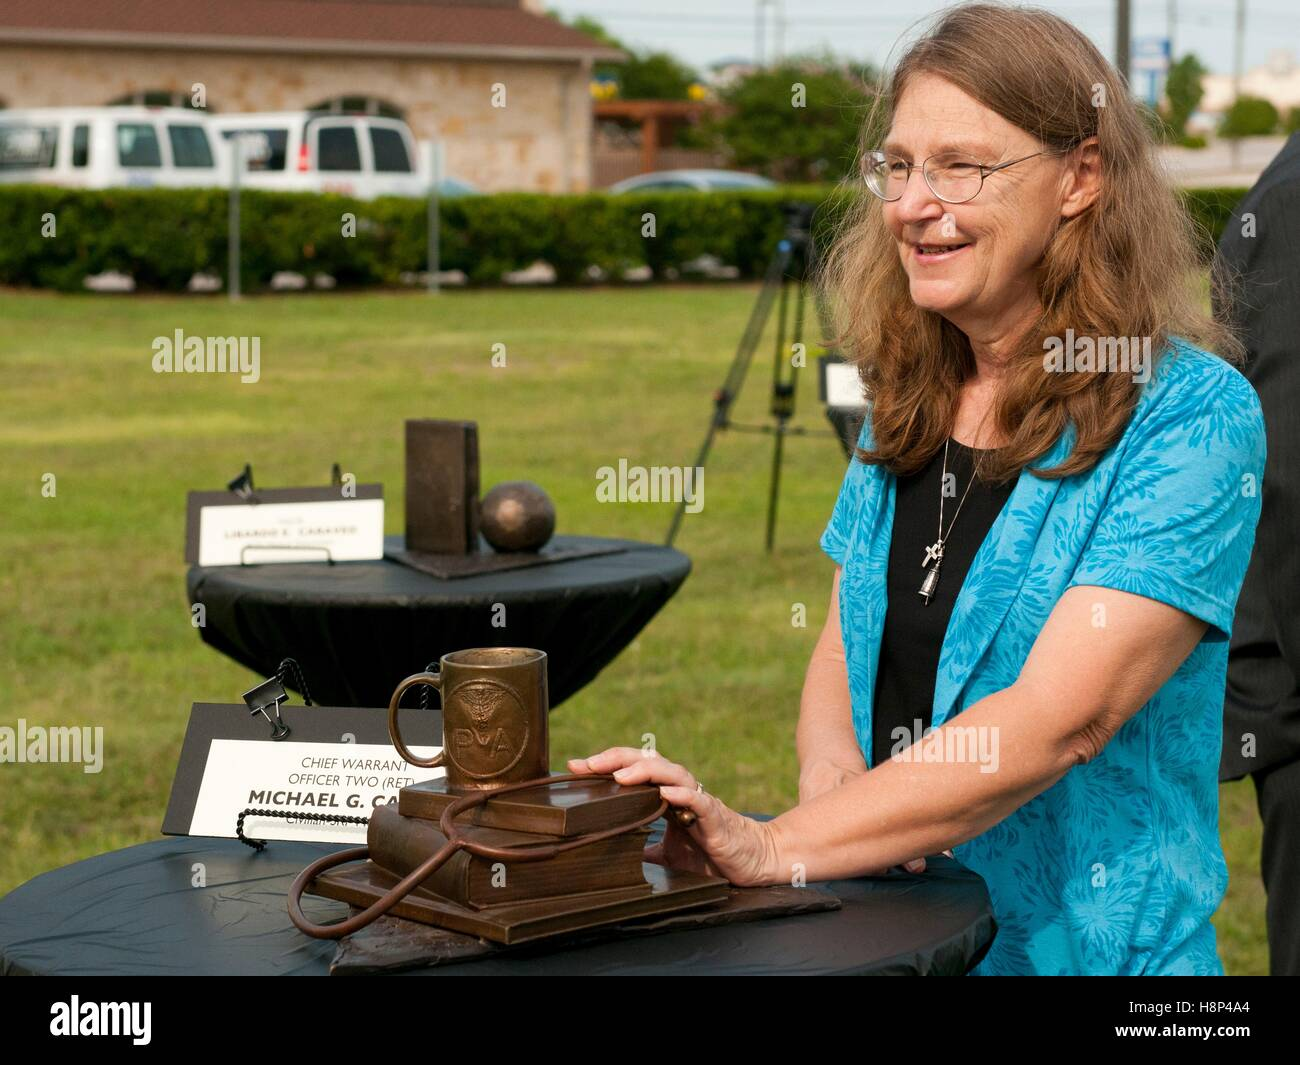 Chief Officer Michael Cahill widow Joleen Cahill touches a memorial sculpture that honors her husband at the groundbreaking - Stock Image